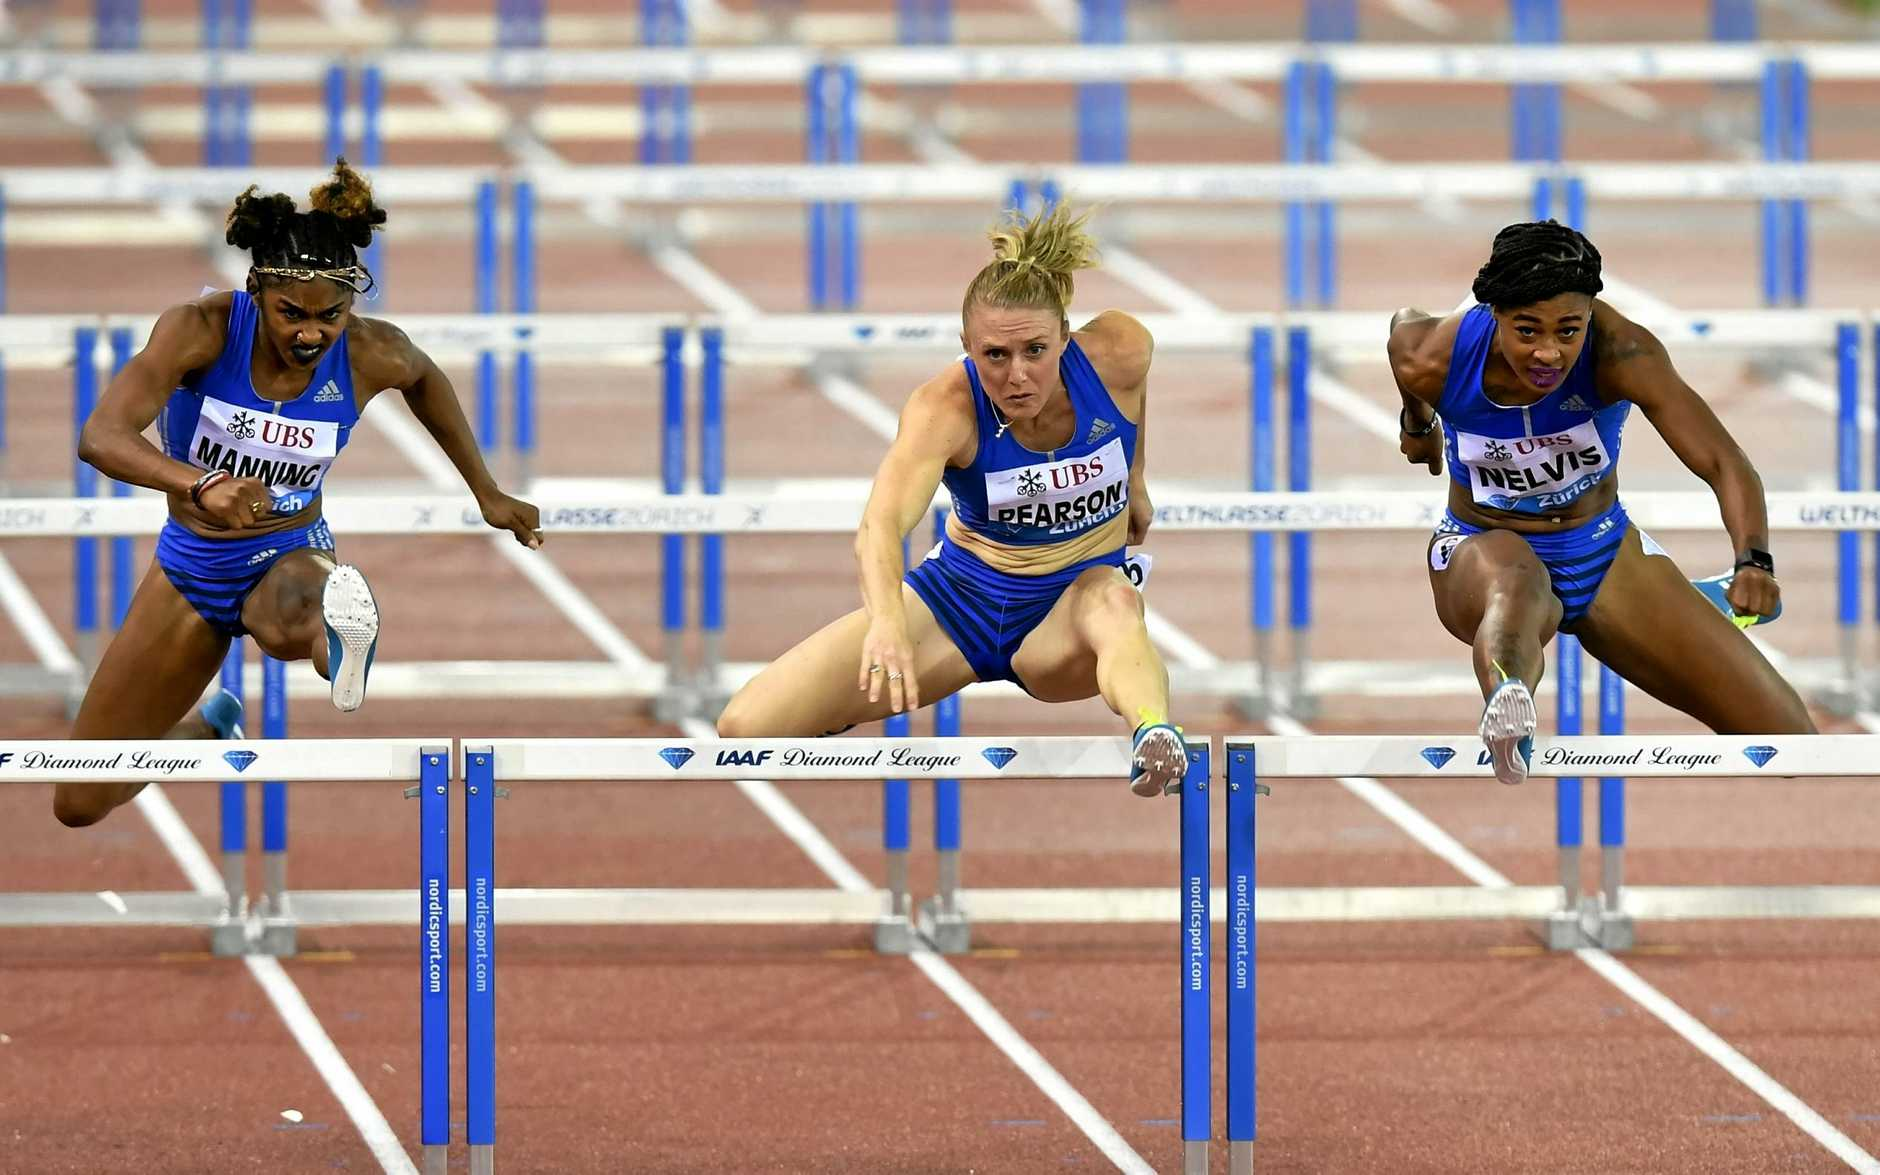 Third placed Christina Manning of United States, left, winner Sally Pearson of Australia and second placed Sharika Nelvis of United States, right, cross the finish line in the Women's 100m Hurdles during the Weltklasse IAAF Diamond League international athletics meeting in the Letzigrund stadium in Zurich, Switzerland, Thursday, Aug. 24, 2017. (Walter Bieri/Keystone via AP)